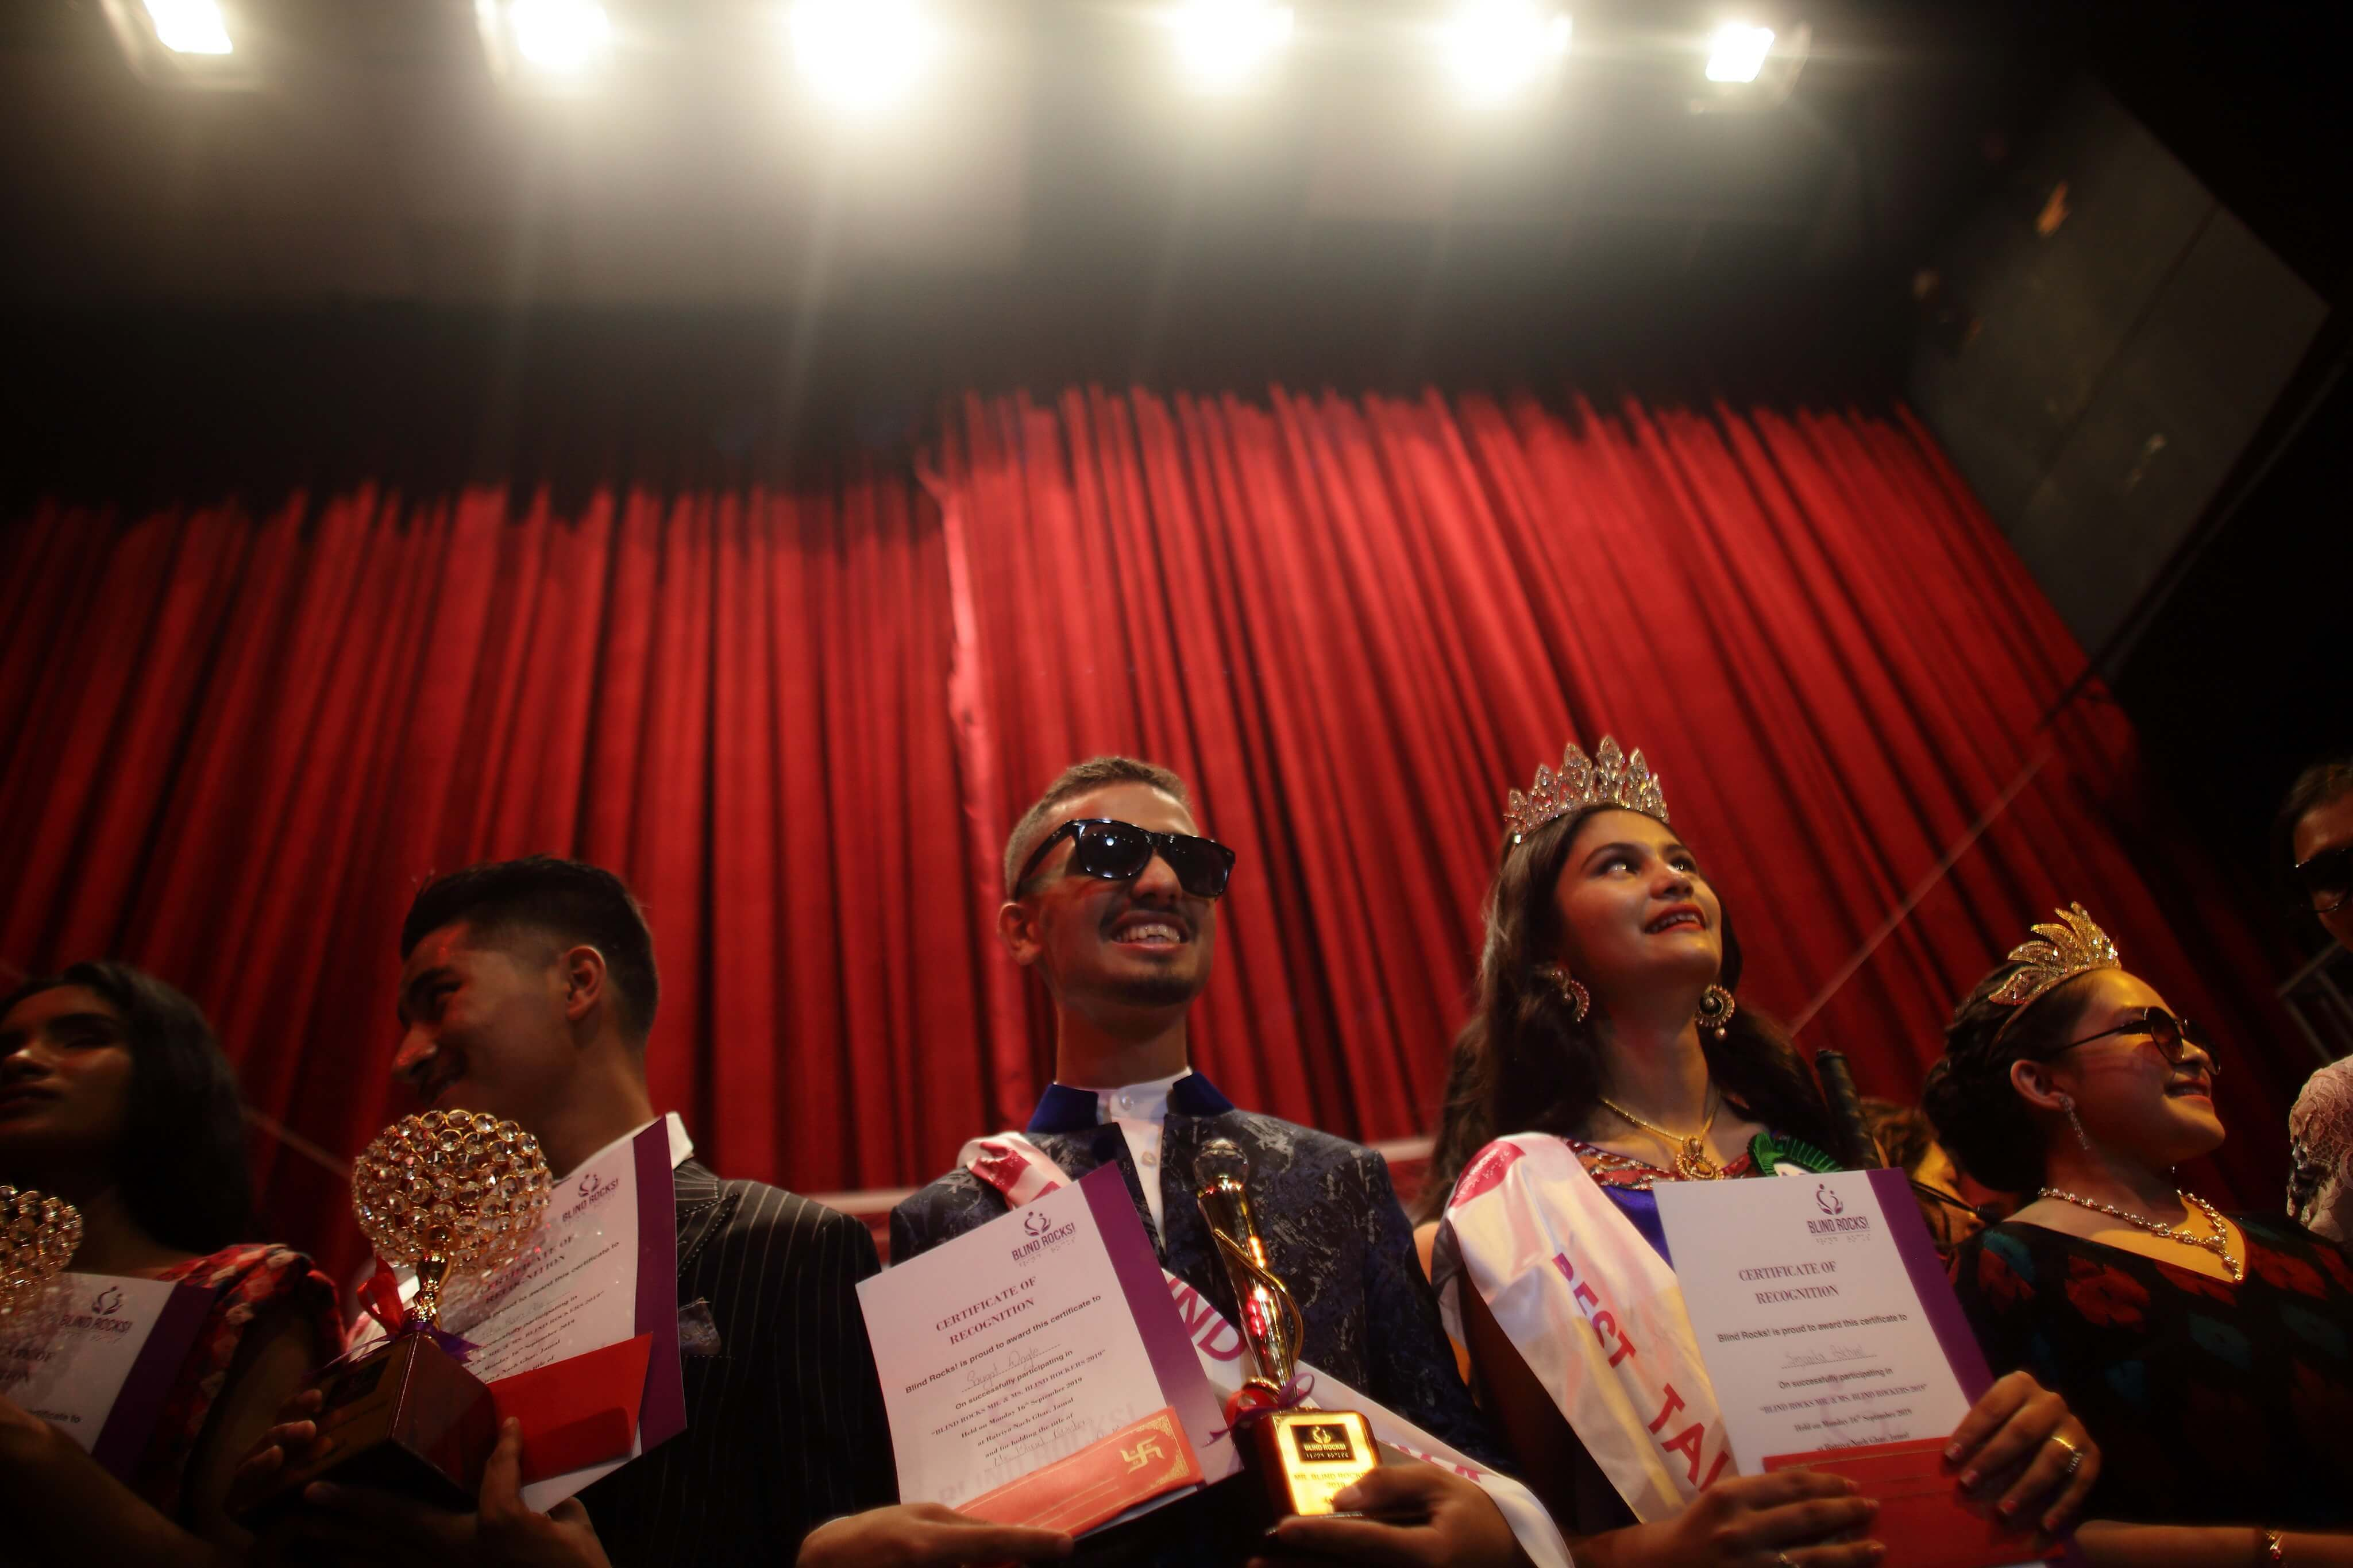 Saugat Wagle and Smarika Pokhrel (third and second from left) after being crowned Mister and Miss Blind Rocks 2019 at Nachghar, Kathmandu on Monday.